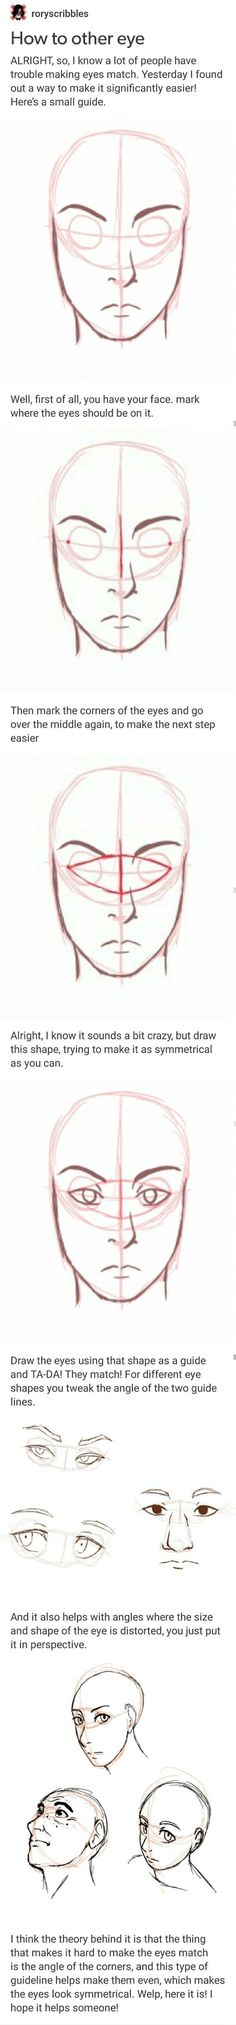 Now I just need too learn to draw everything else - Great! Now I just need too learn to draw everything else Great! Now I just need too learn to draw everything else Drawing Tutorials, Drawing Tips, Art Tutorials, Drawing Sketches, Sketching, Anatomy Sketches, Drawing Ideas, Drawing Stuff, Anatomy Drawing